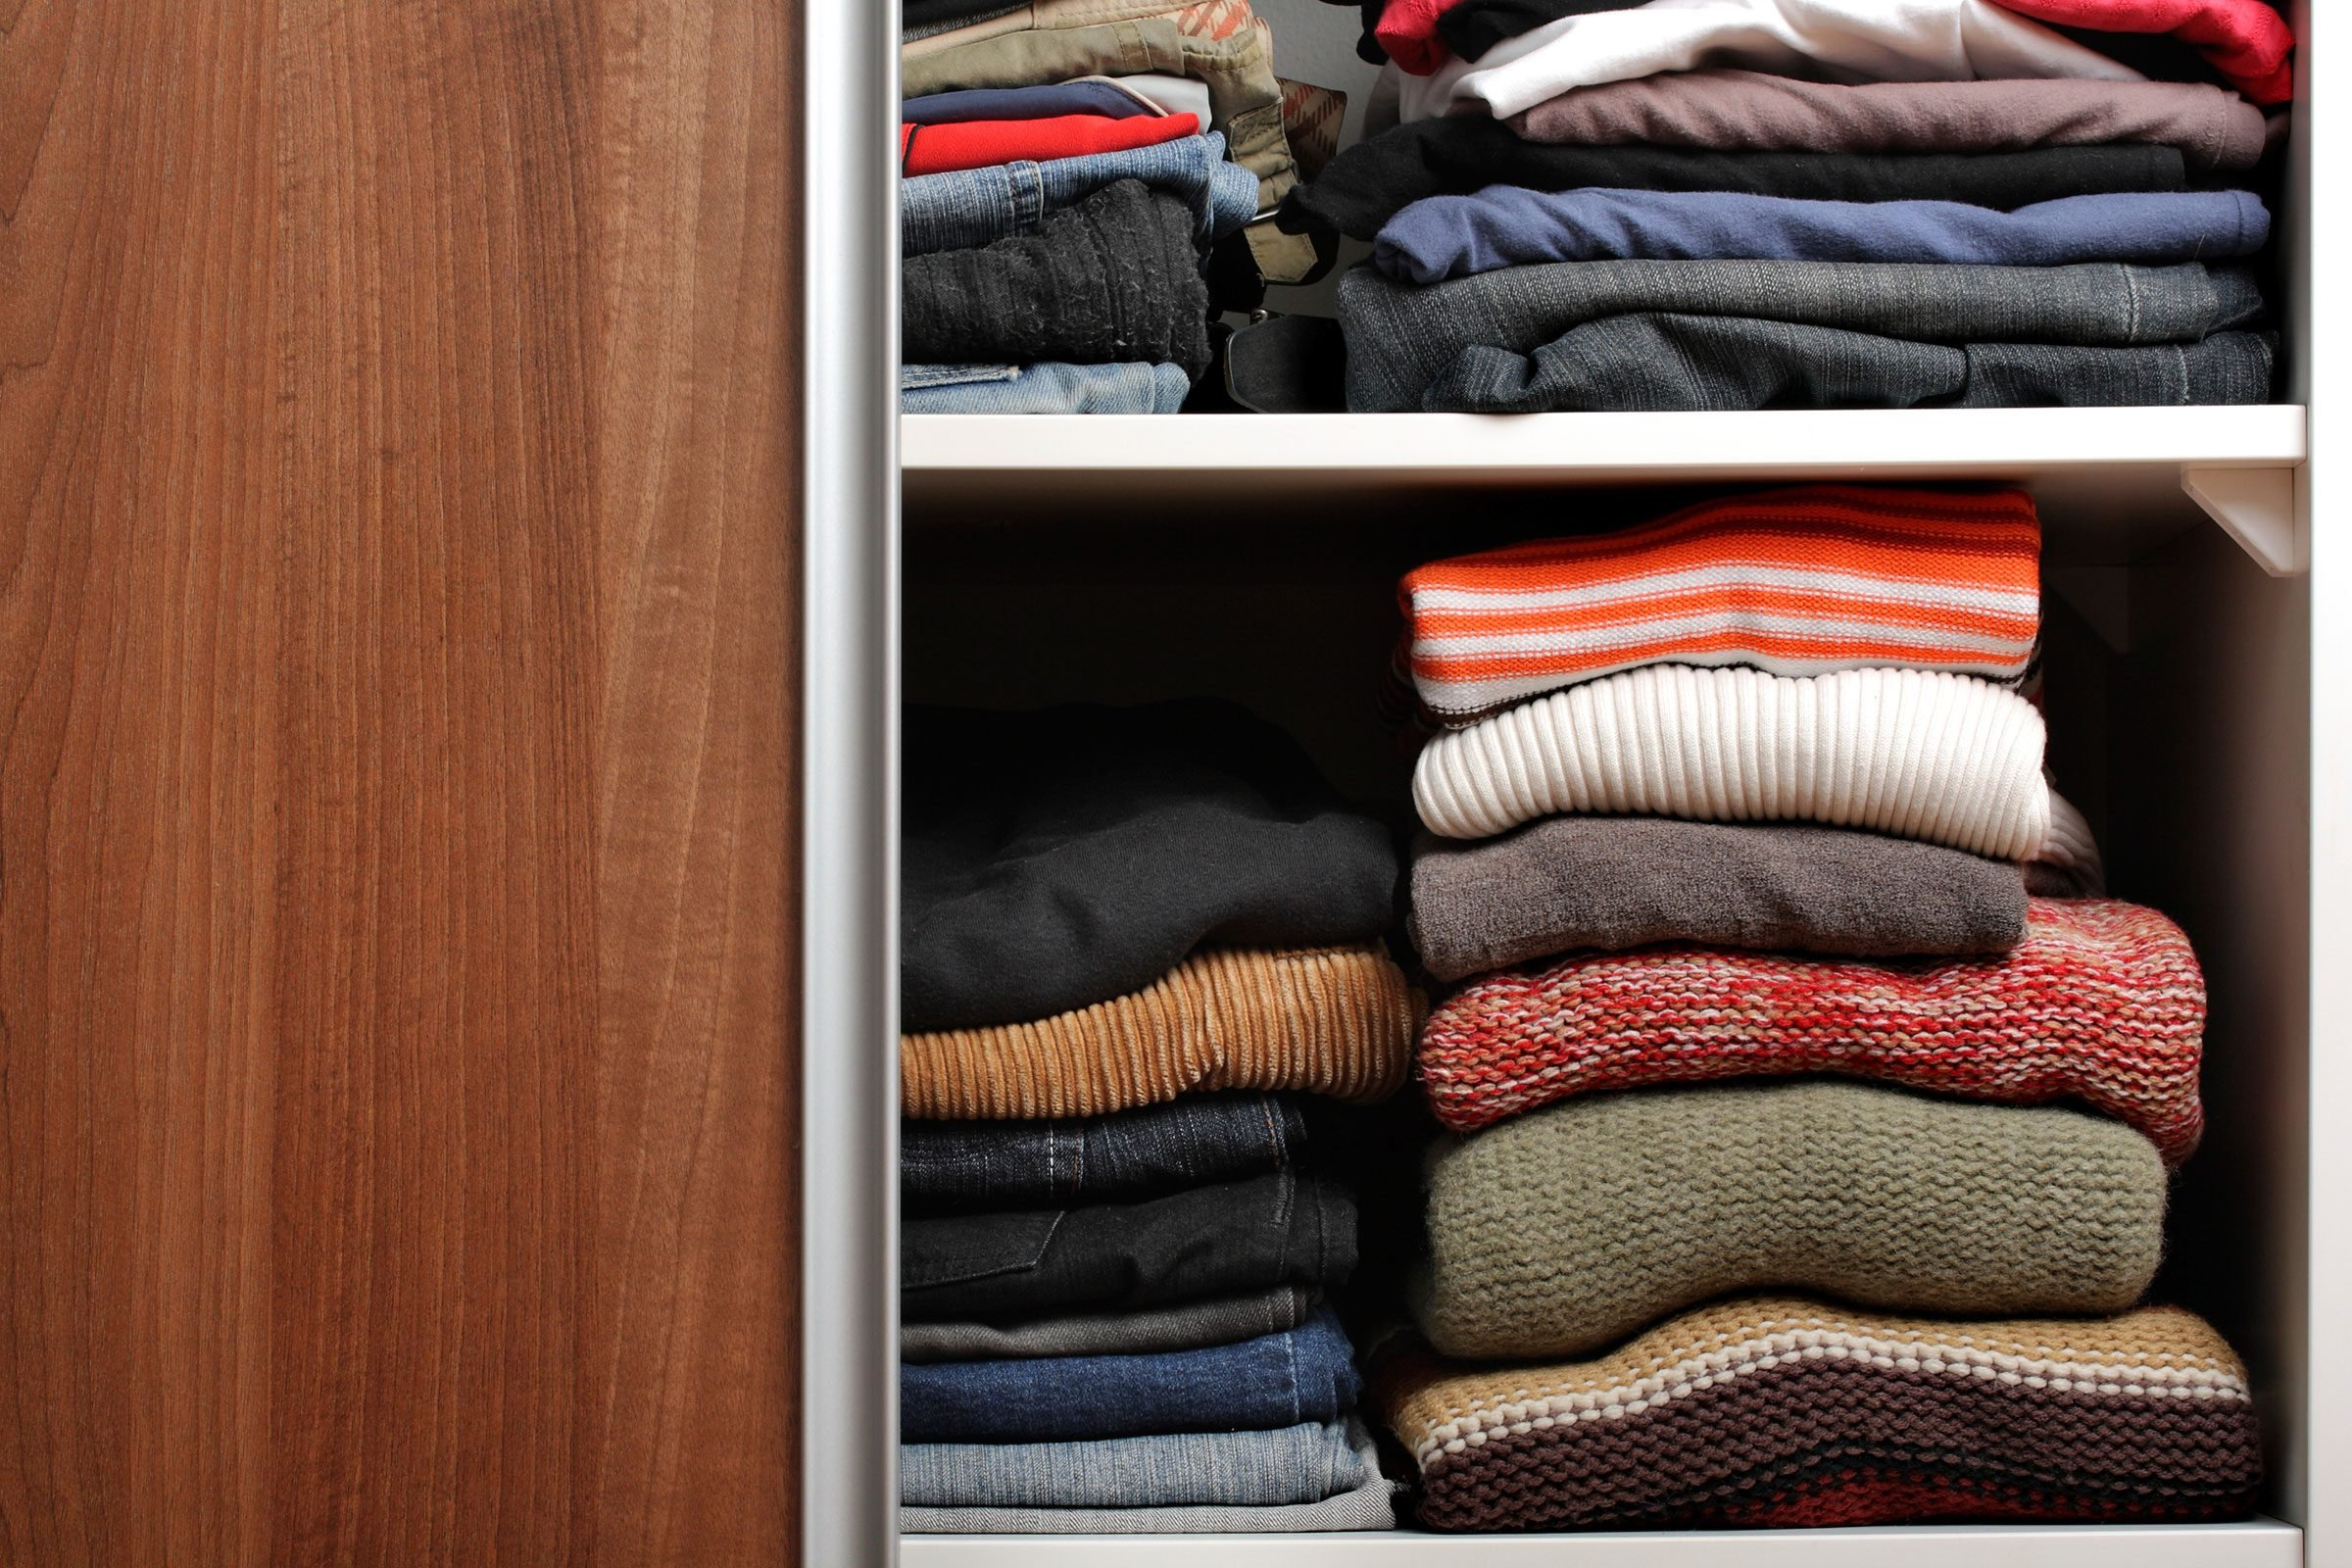 organize your closet: 9 rules for what to keep | reader's digest